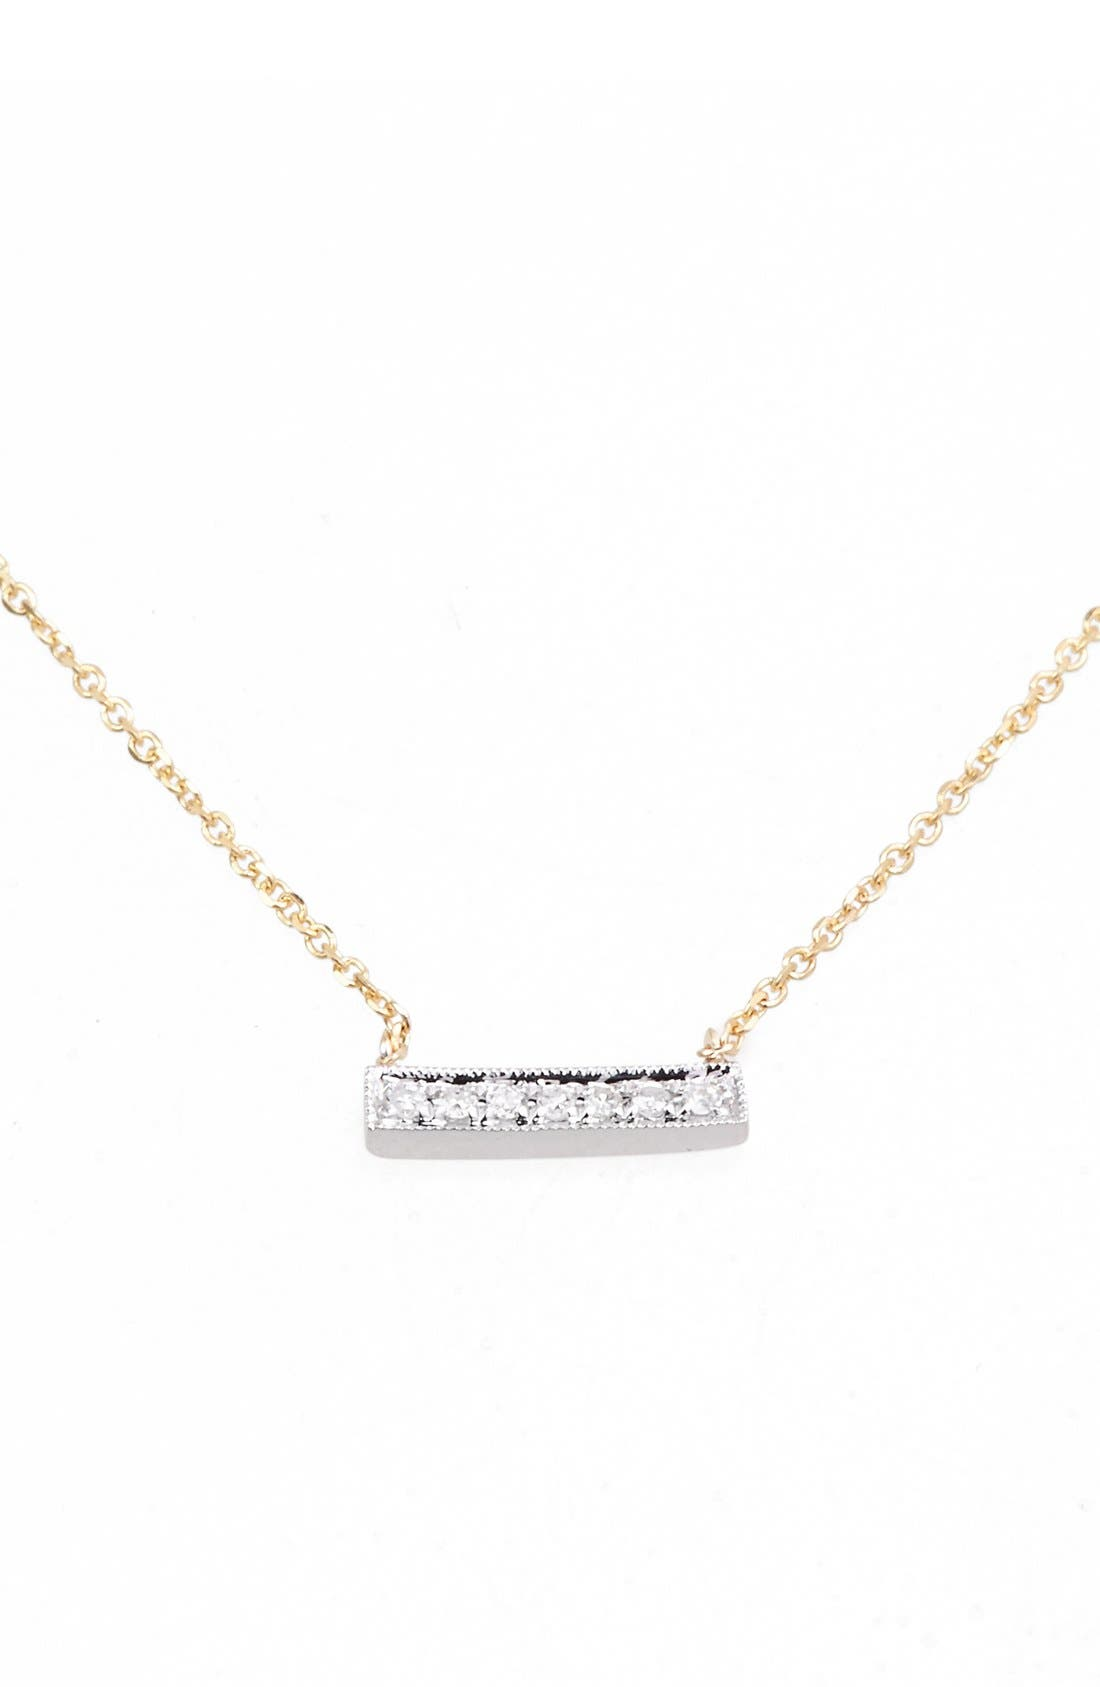 'Sylvie Rose' Diamond Bar Pendant Necklace,                             Main thumbnail 1, color,                             YELLOW GOLD